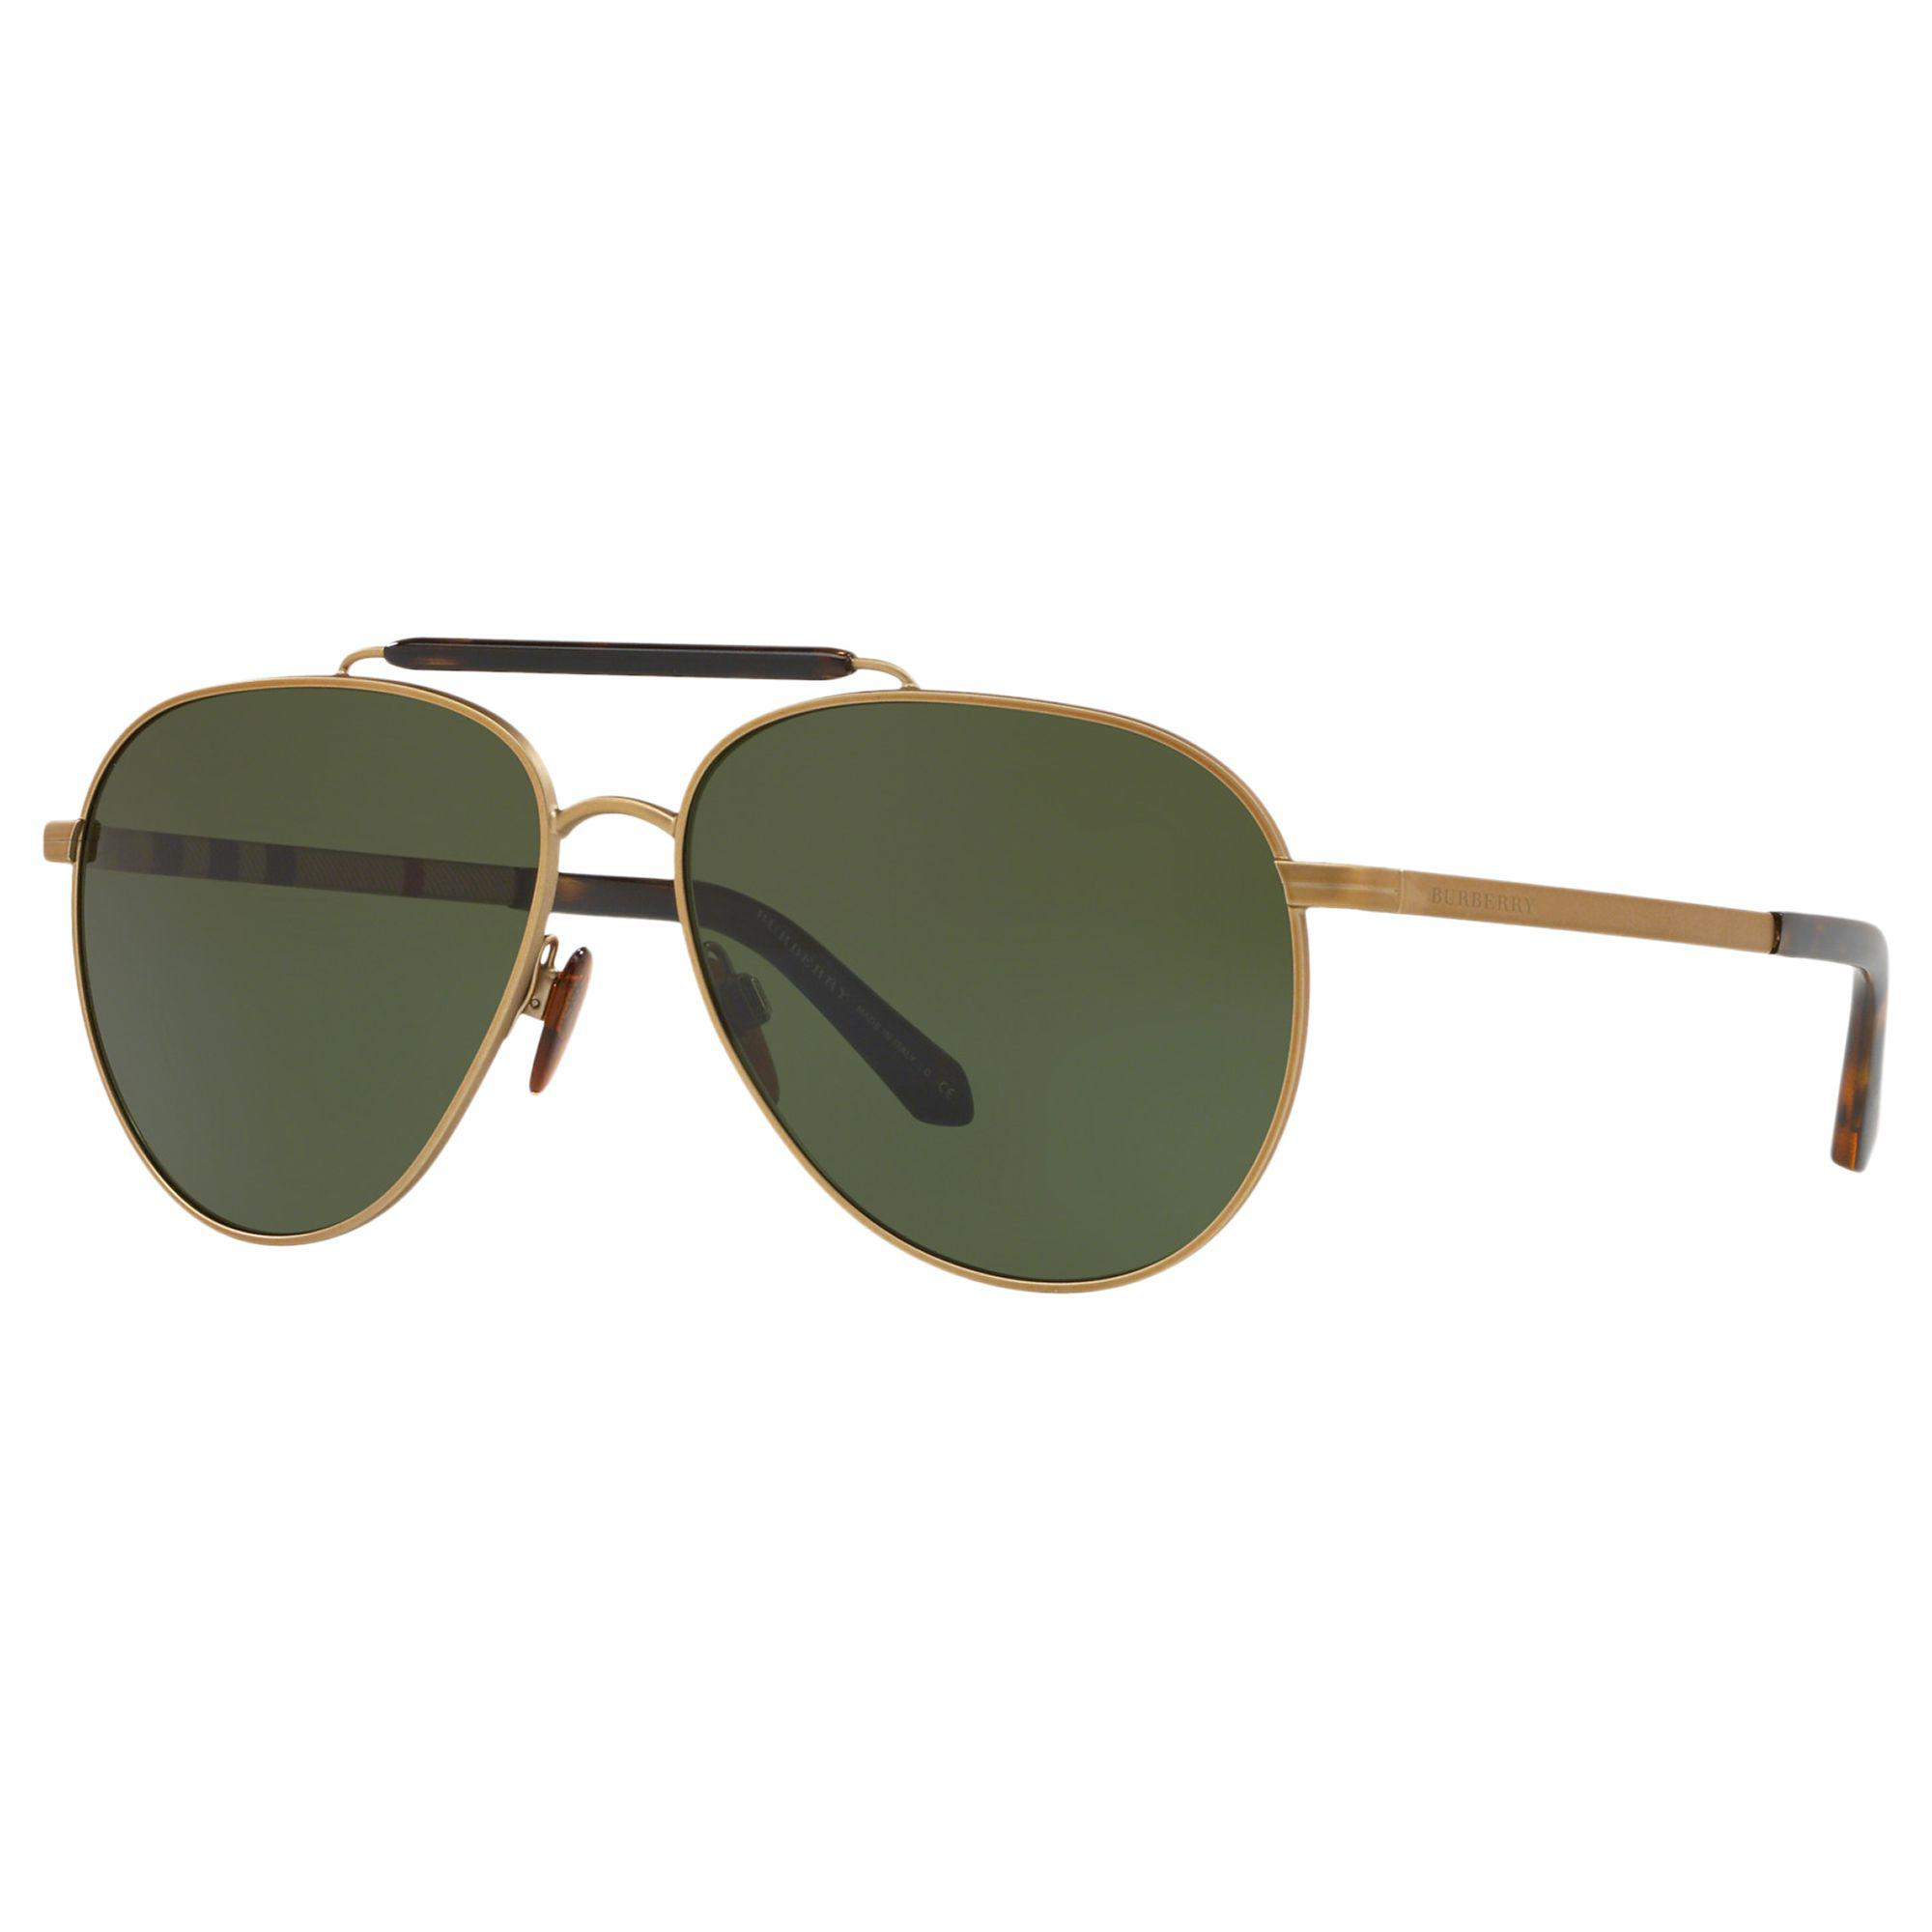 a9f355c0cb62 Burberry - Metallic Milton Aviator Metal Sunglasses for Men - Lyst. View  fullscreen